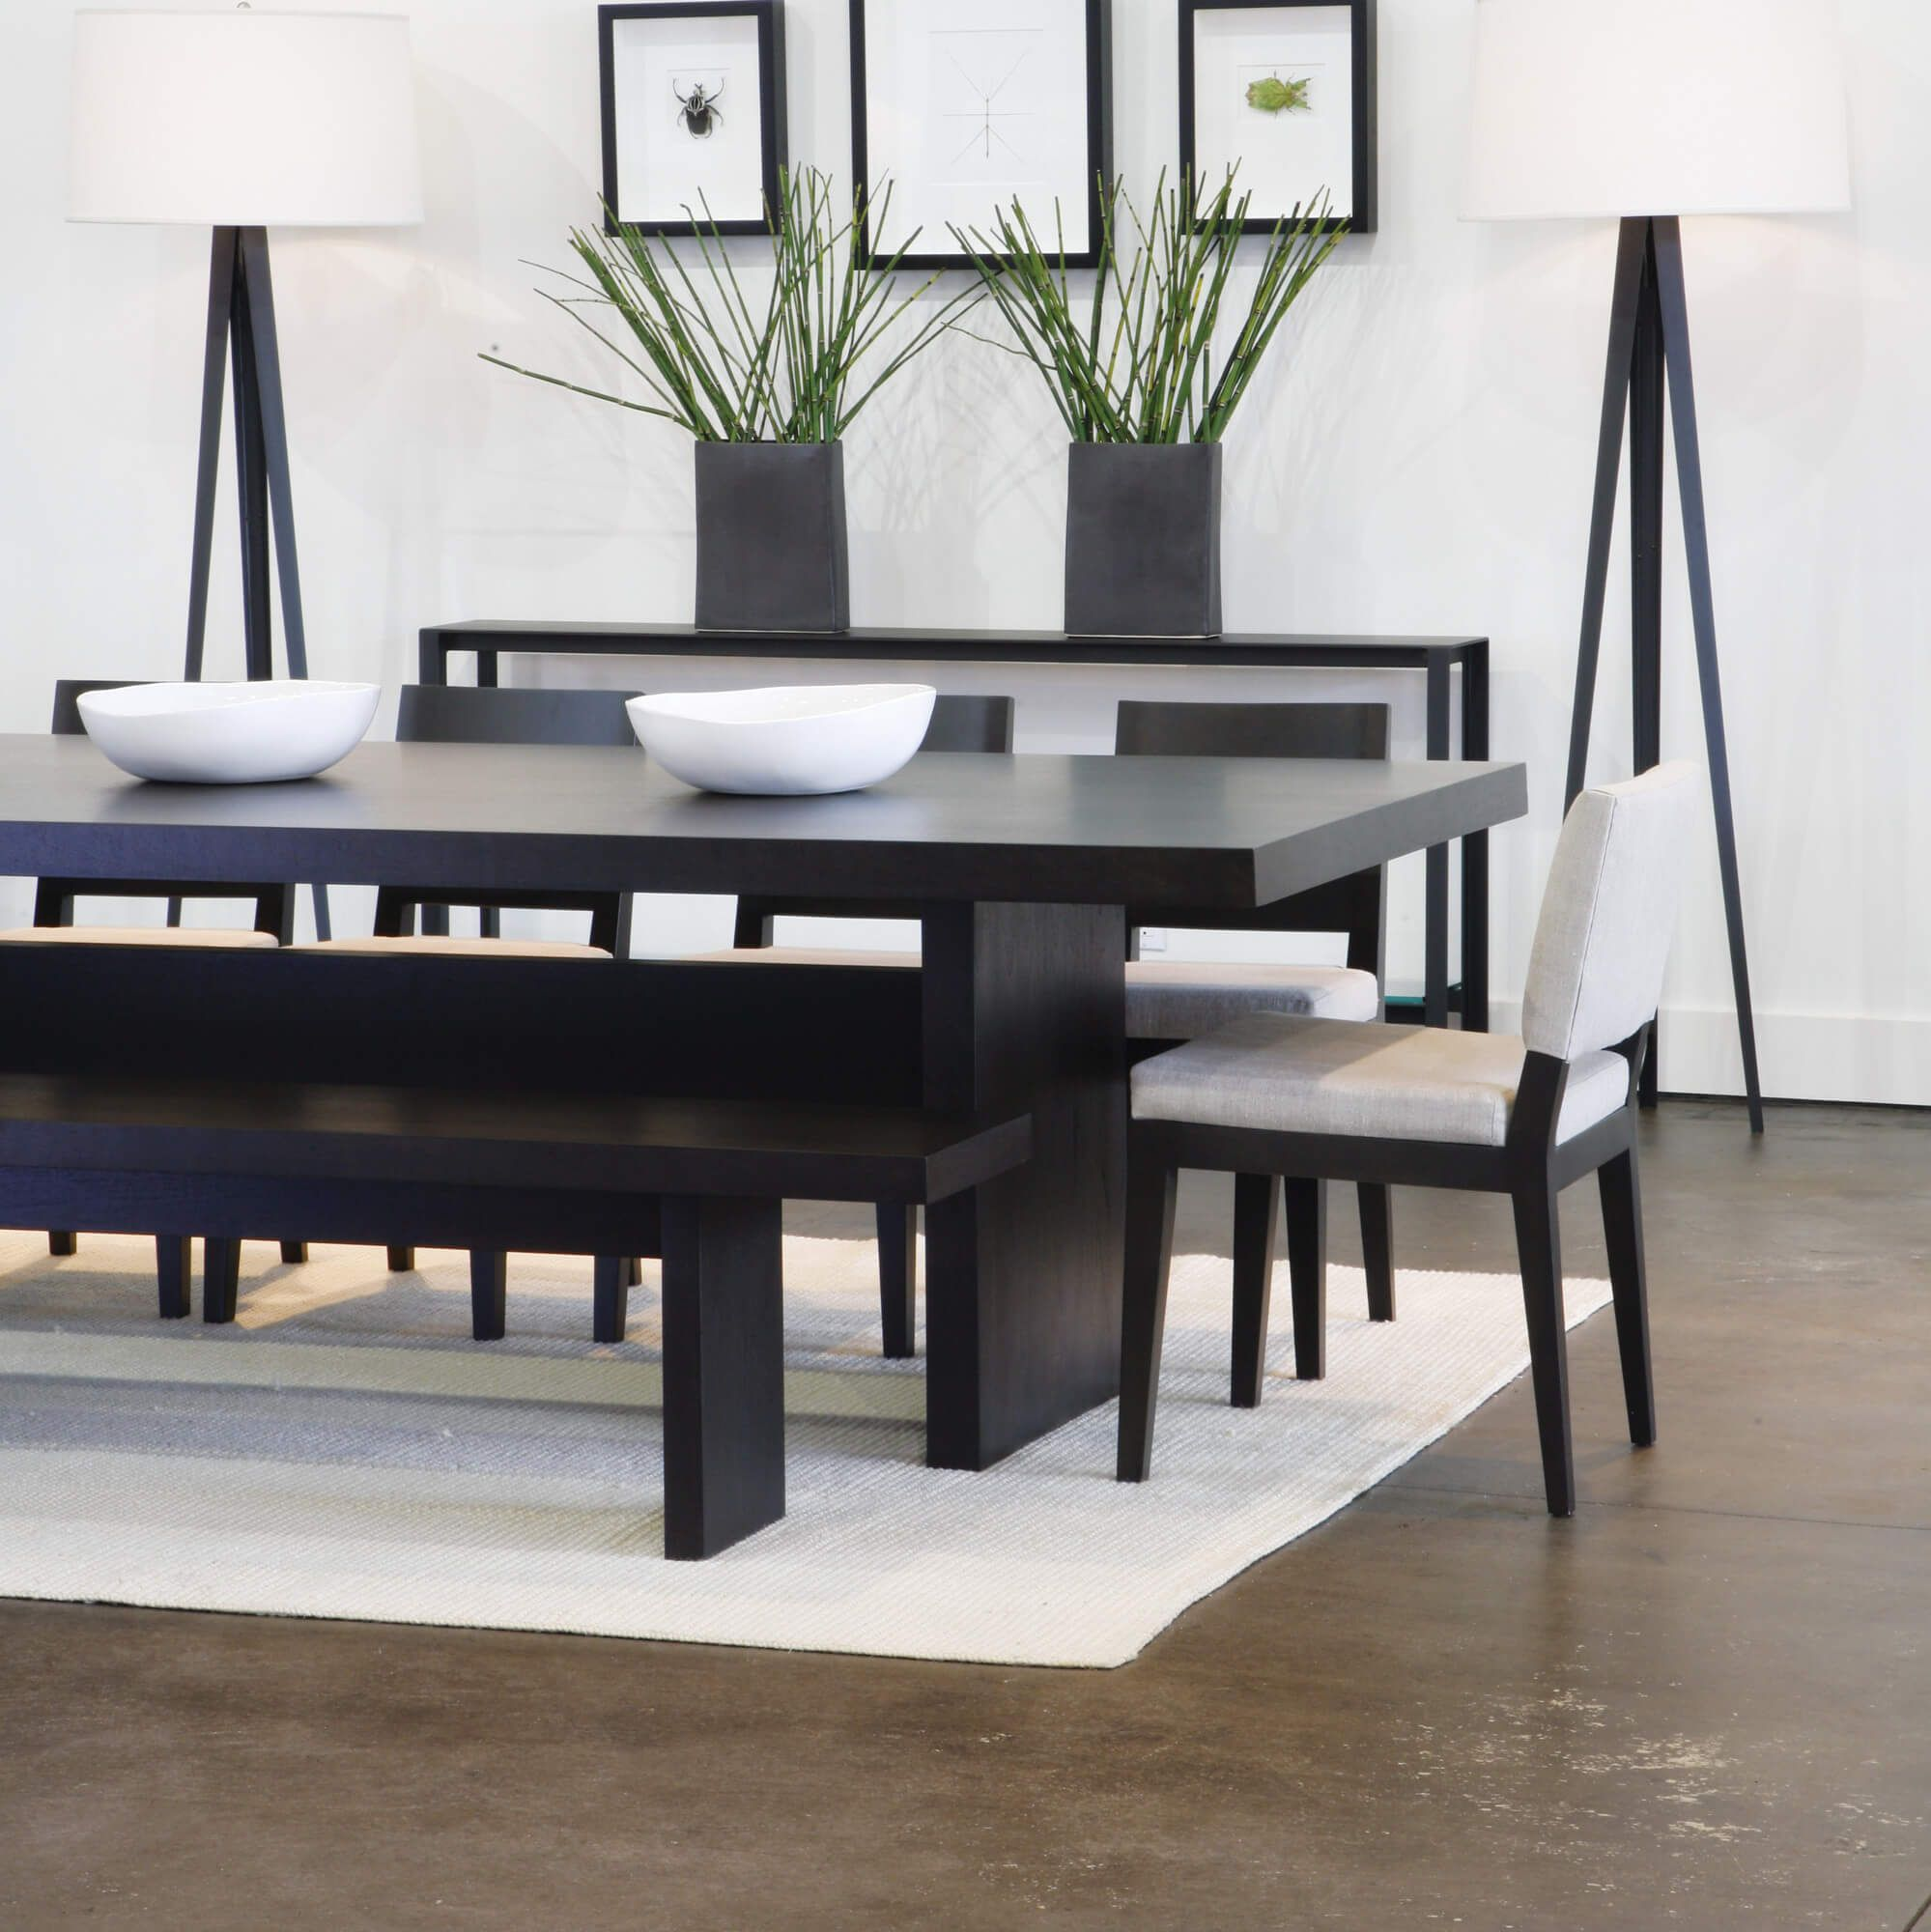 Bon 5 Piece Modern Dining Room Set With Bench. This Is A Great Dining Room  Furniture